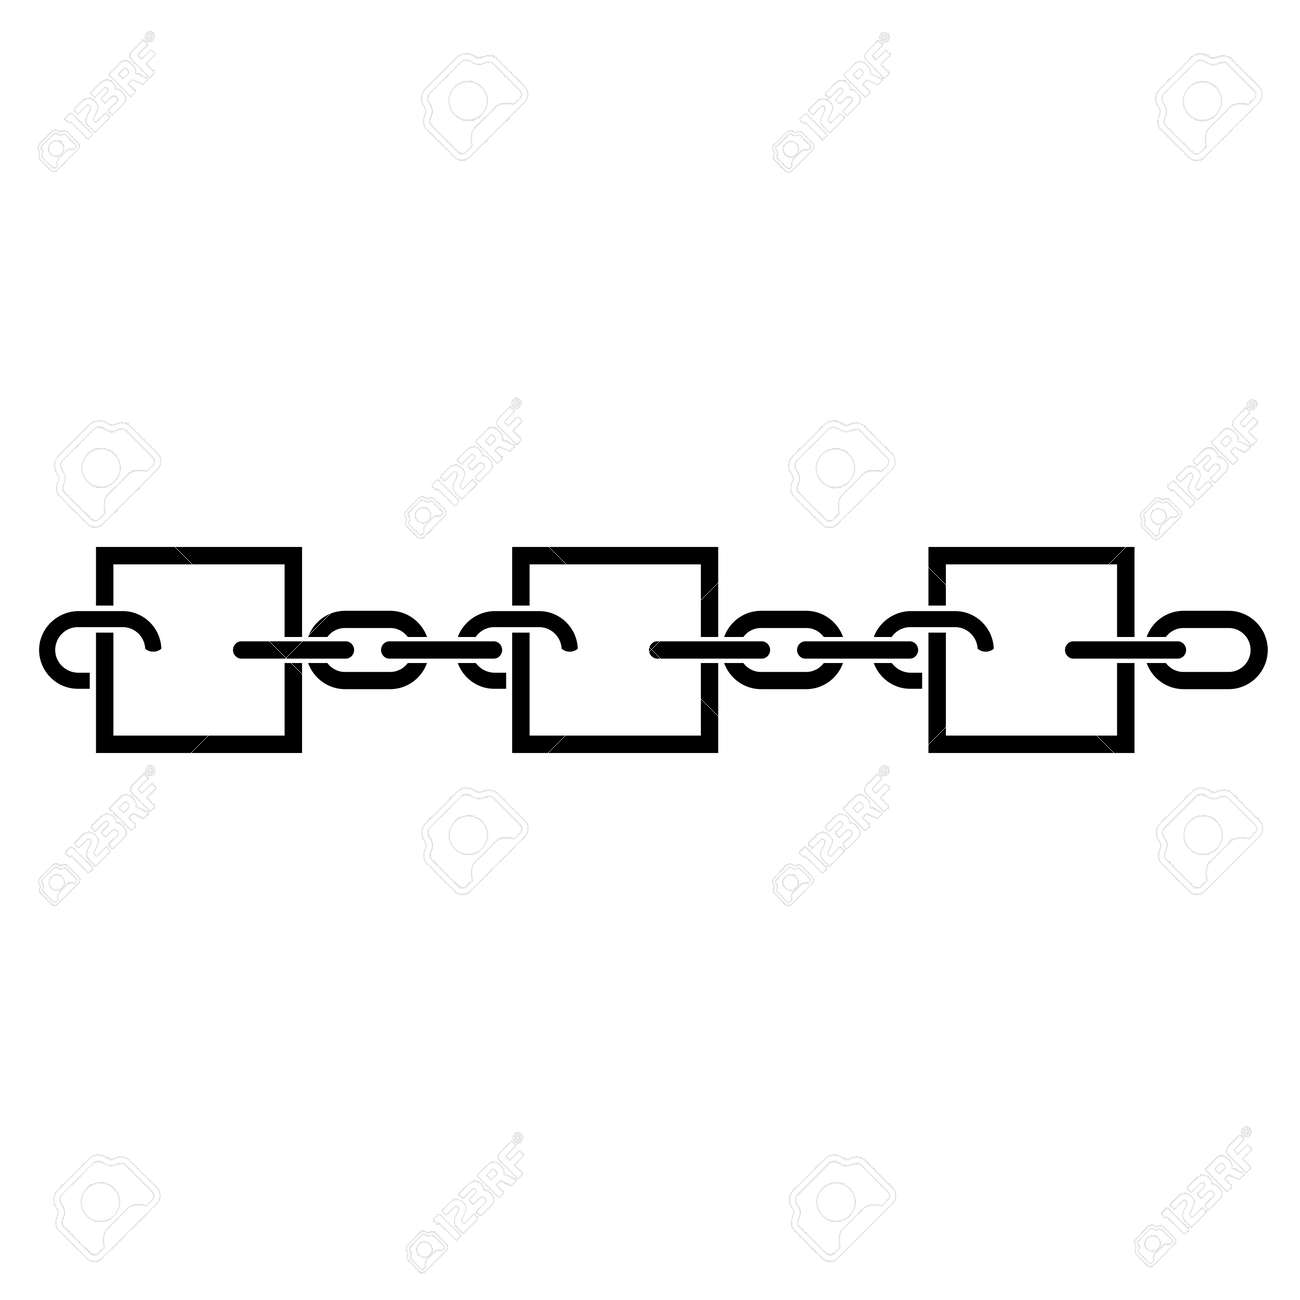 Blockchain Line Icon Records Represented By Blocks Connected With Chain Links Vector Illustration